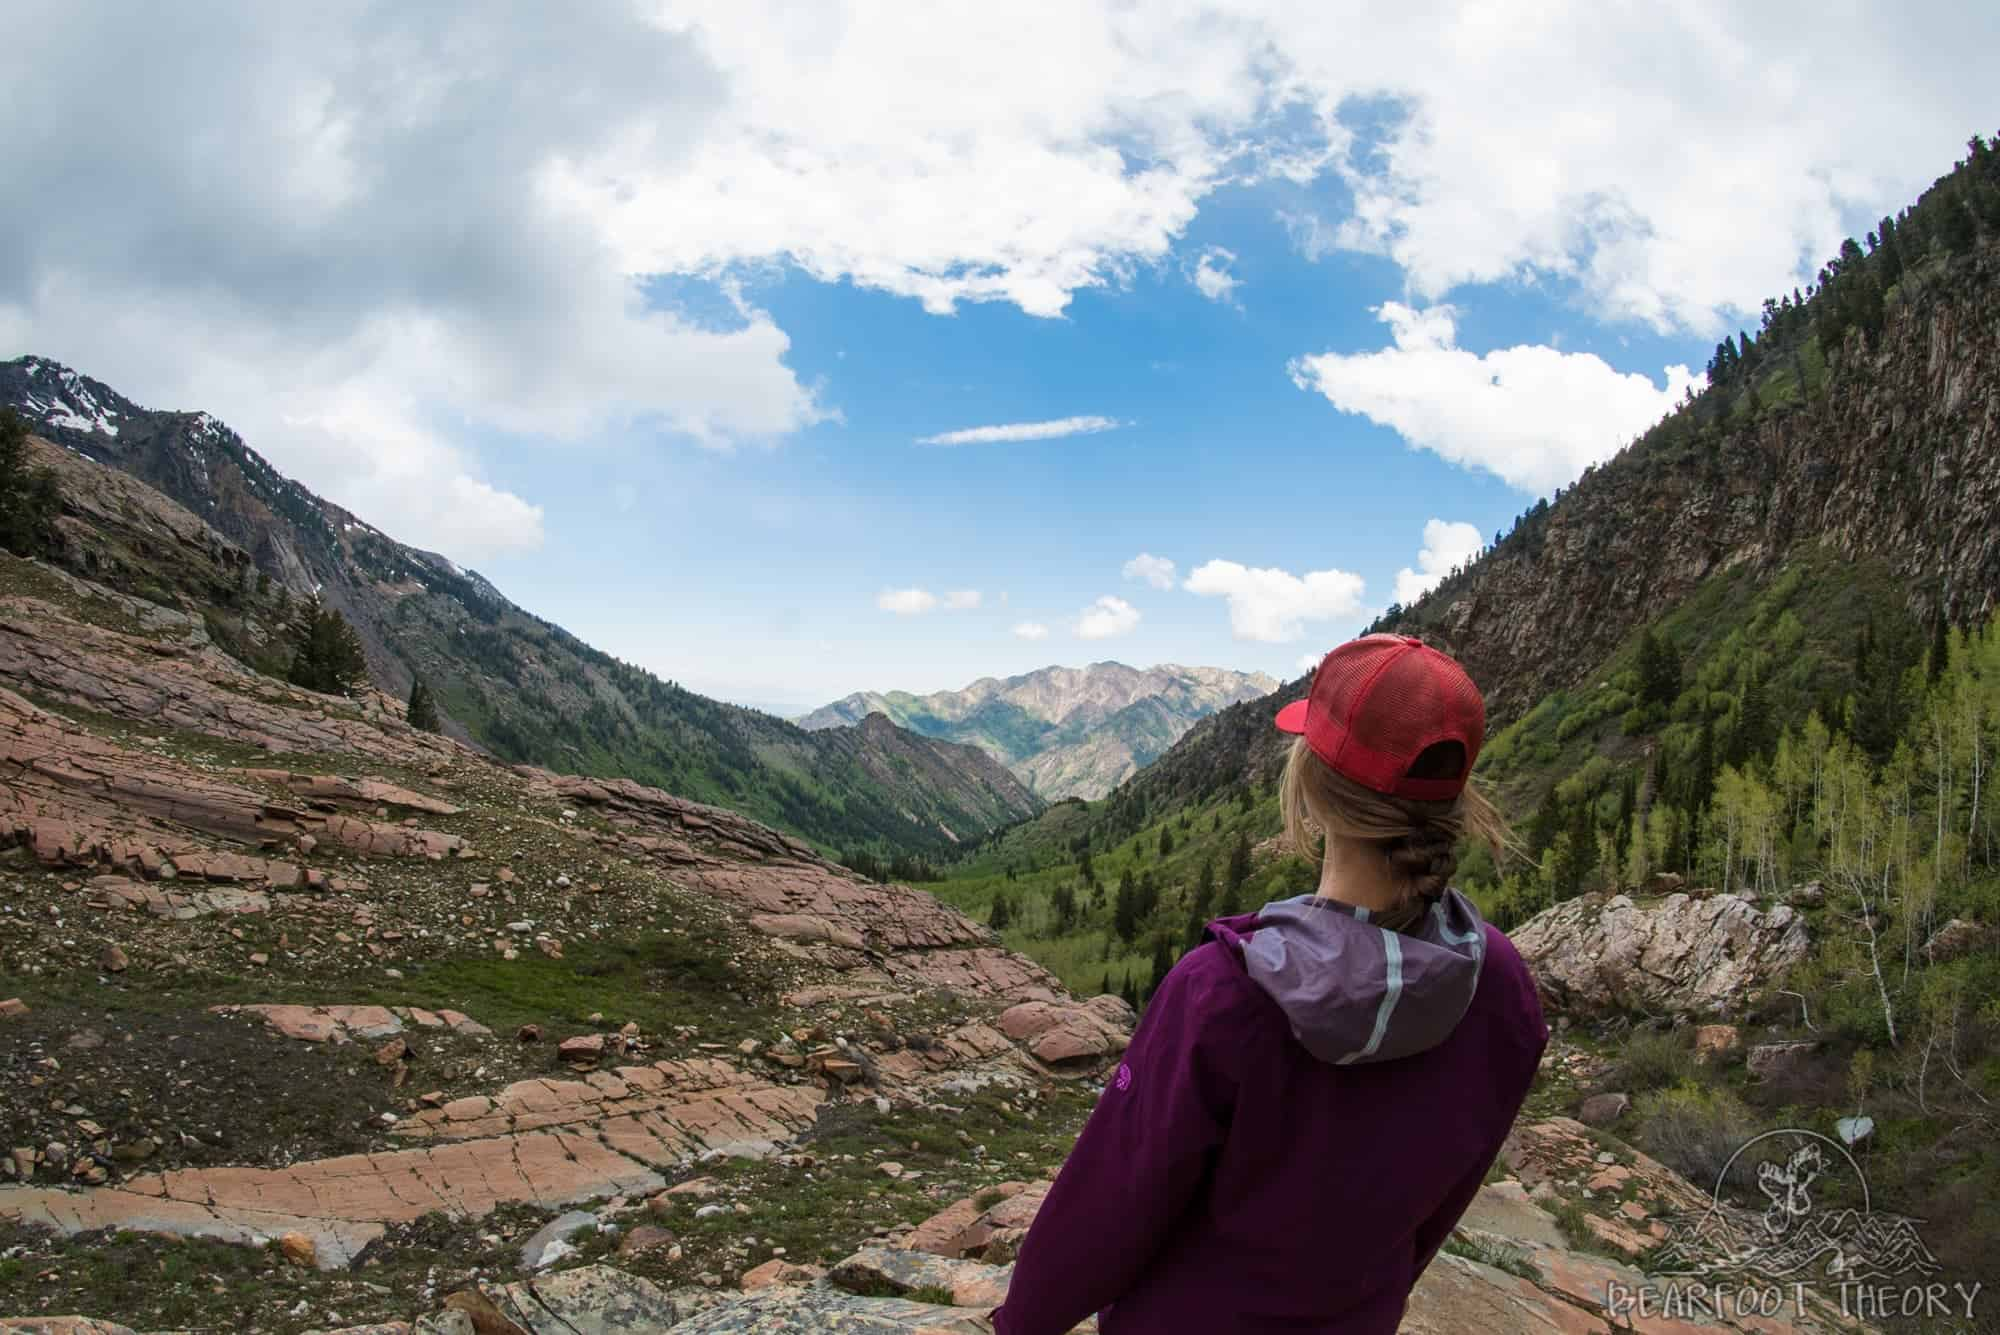 Looking down into Big Cottonwood Canyon from Lake Blanche, Utah